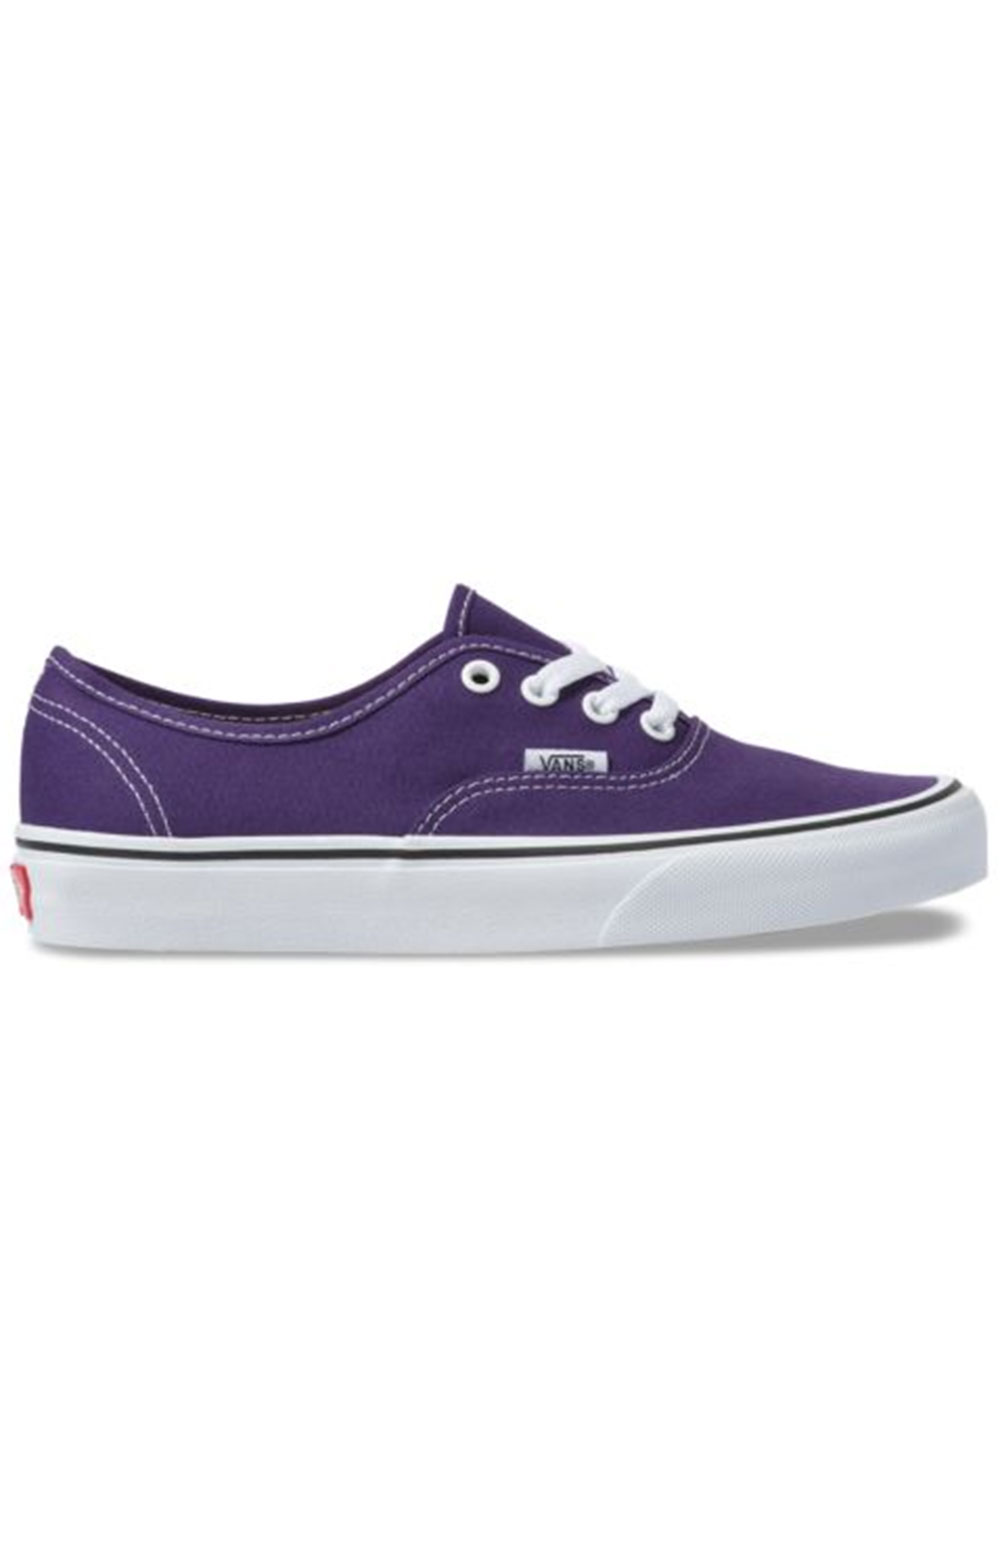 (Z5IV7F) Authentic Shoe - Violet Indigo